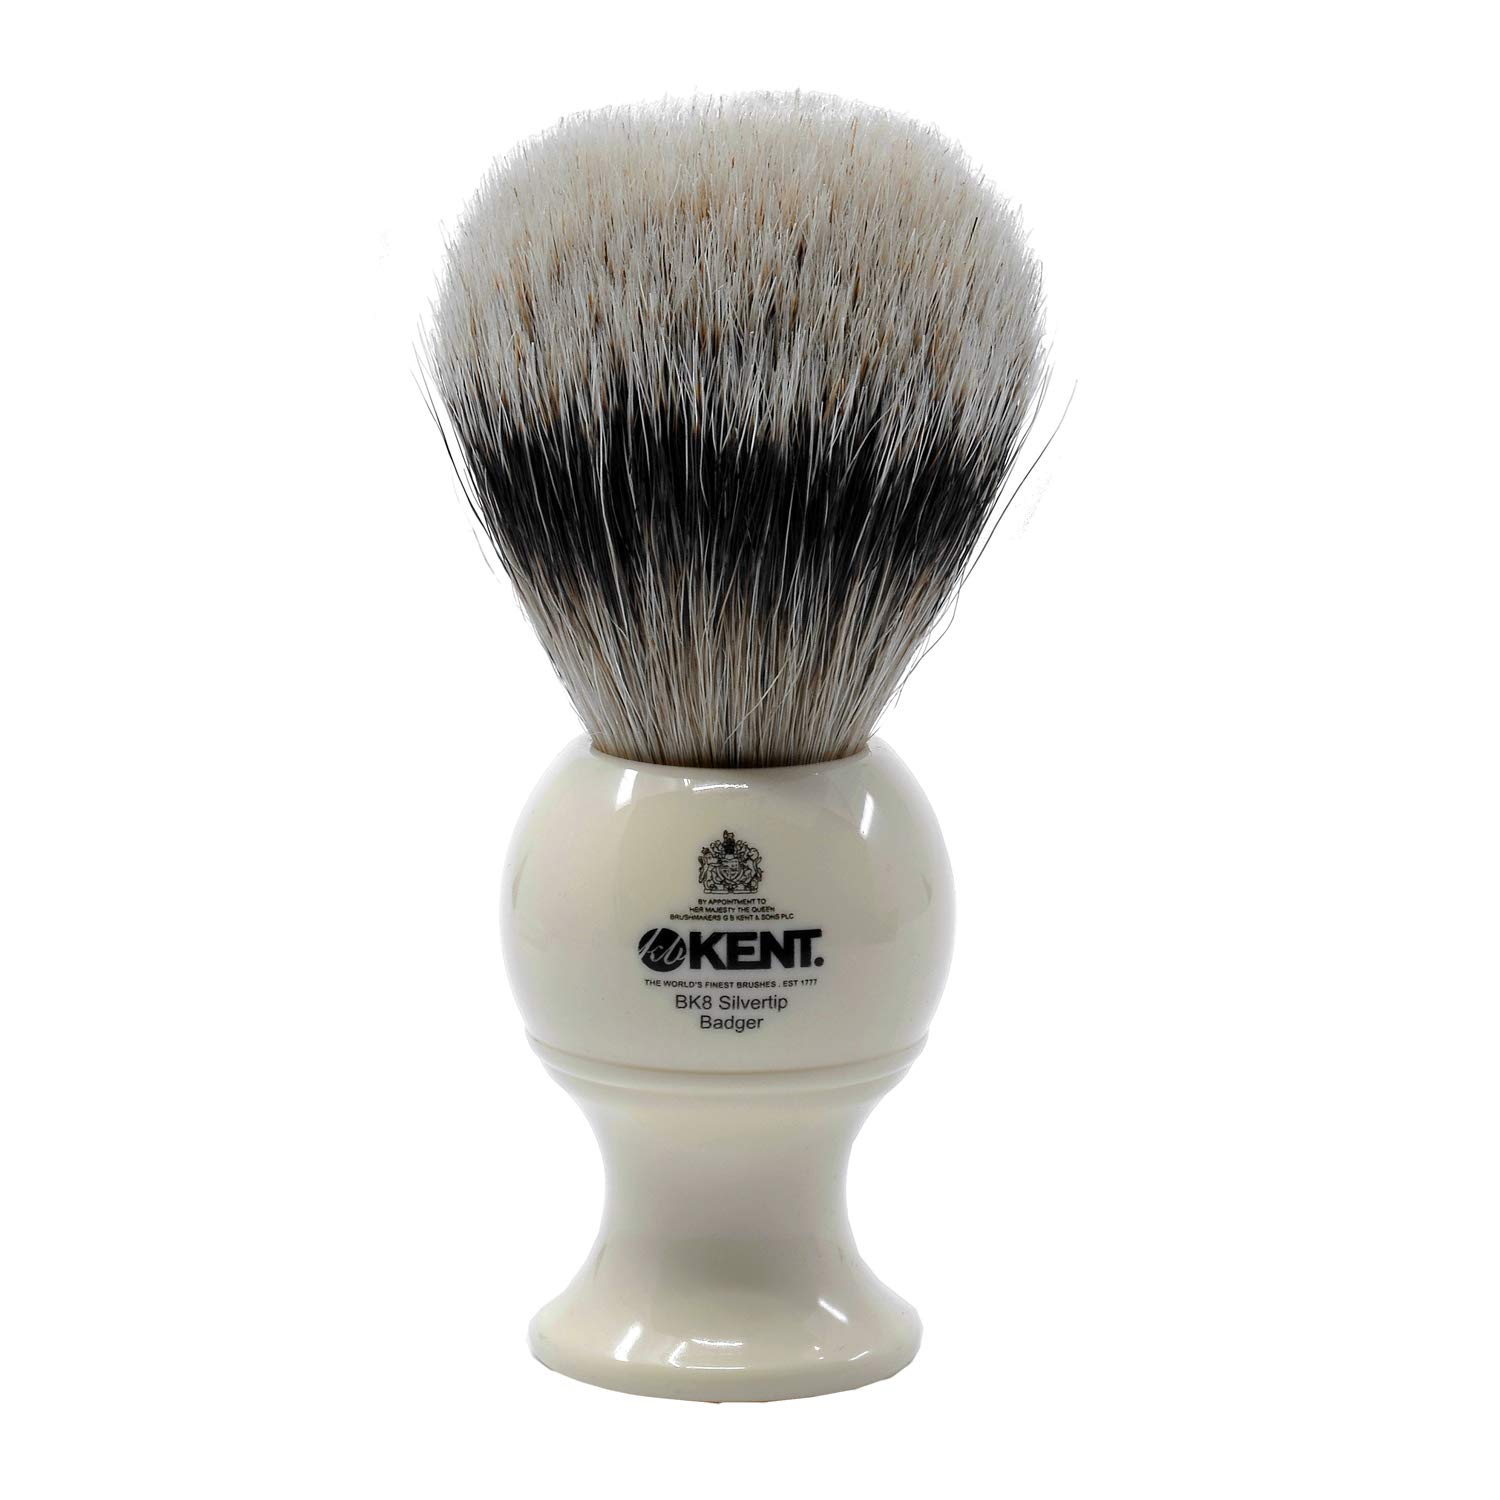 Kent Traditional Pure Grey Badger Bristle Shaving Brush - For Coarse or Stiff Hair, Comes In Red Presentation Case (BK8) by KENT